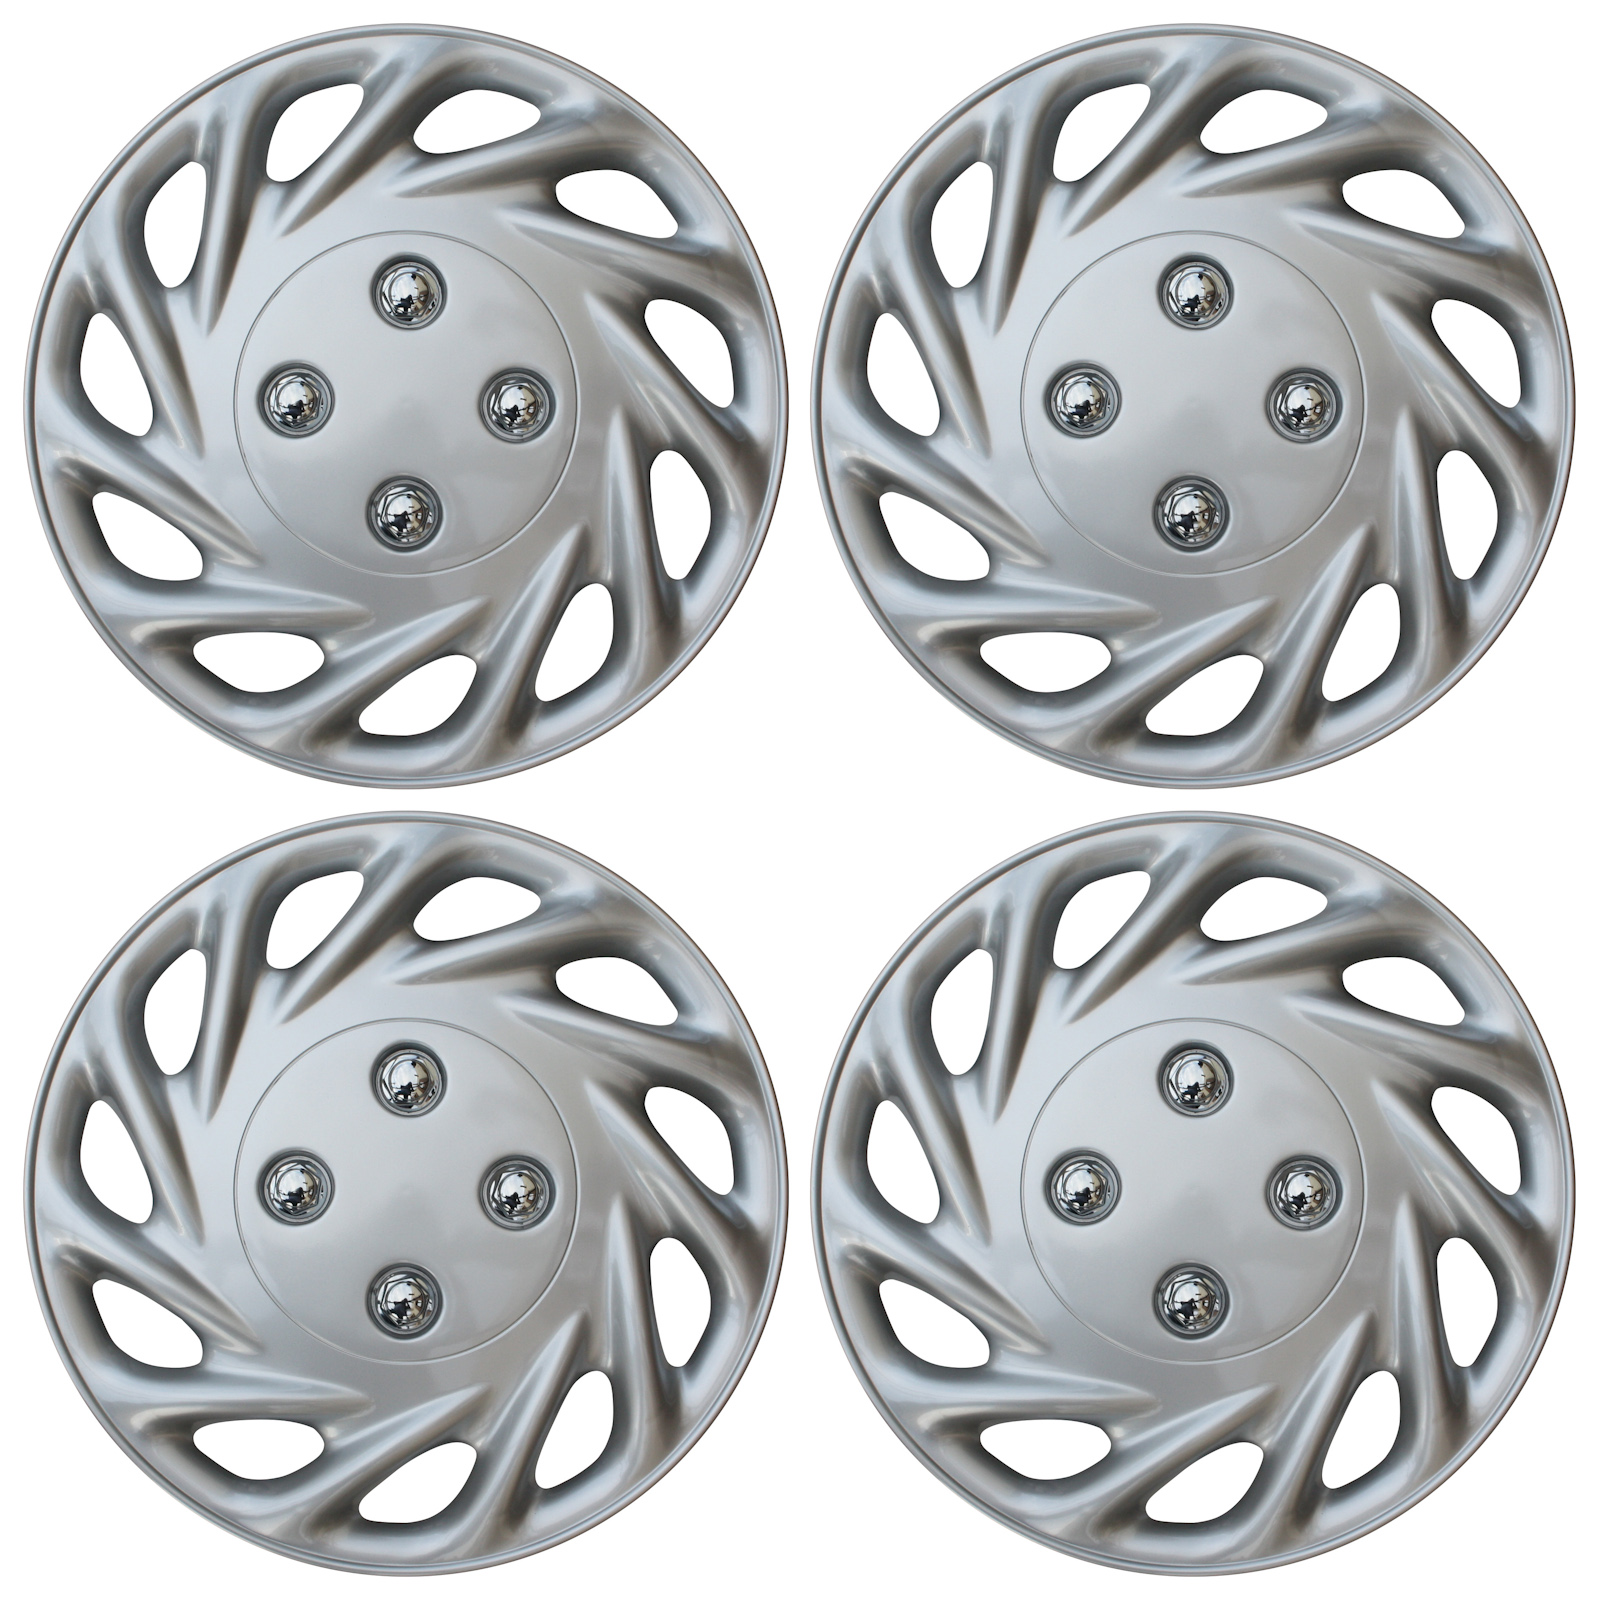 """BRAND NEW 4 PC Set ABS Silver Fits 13"""" Inch Wheel Cover Hub Caps Cap"""